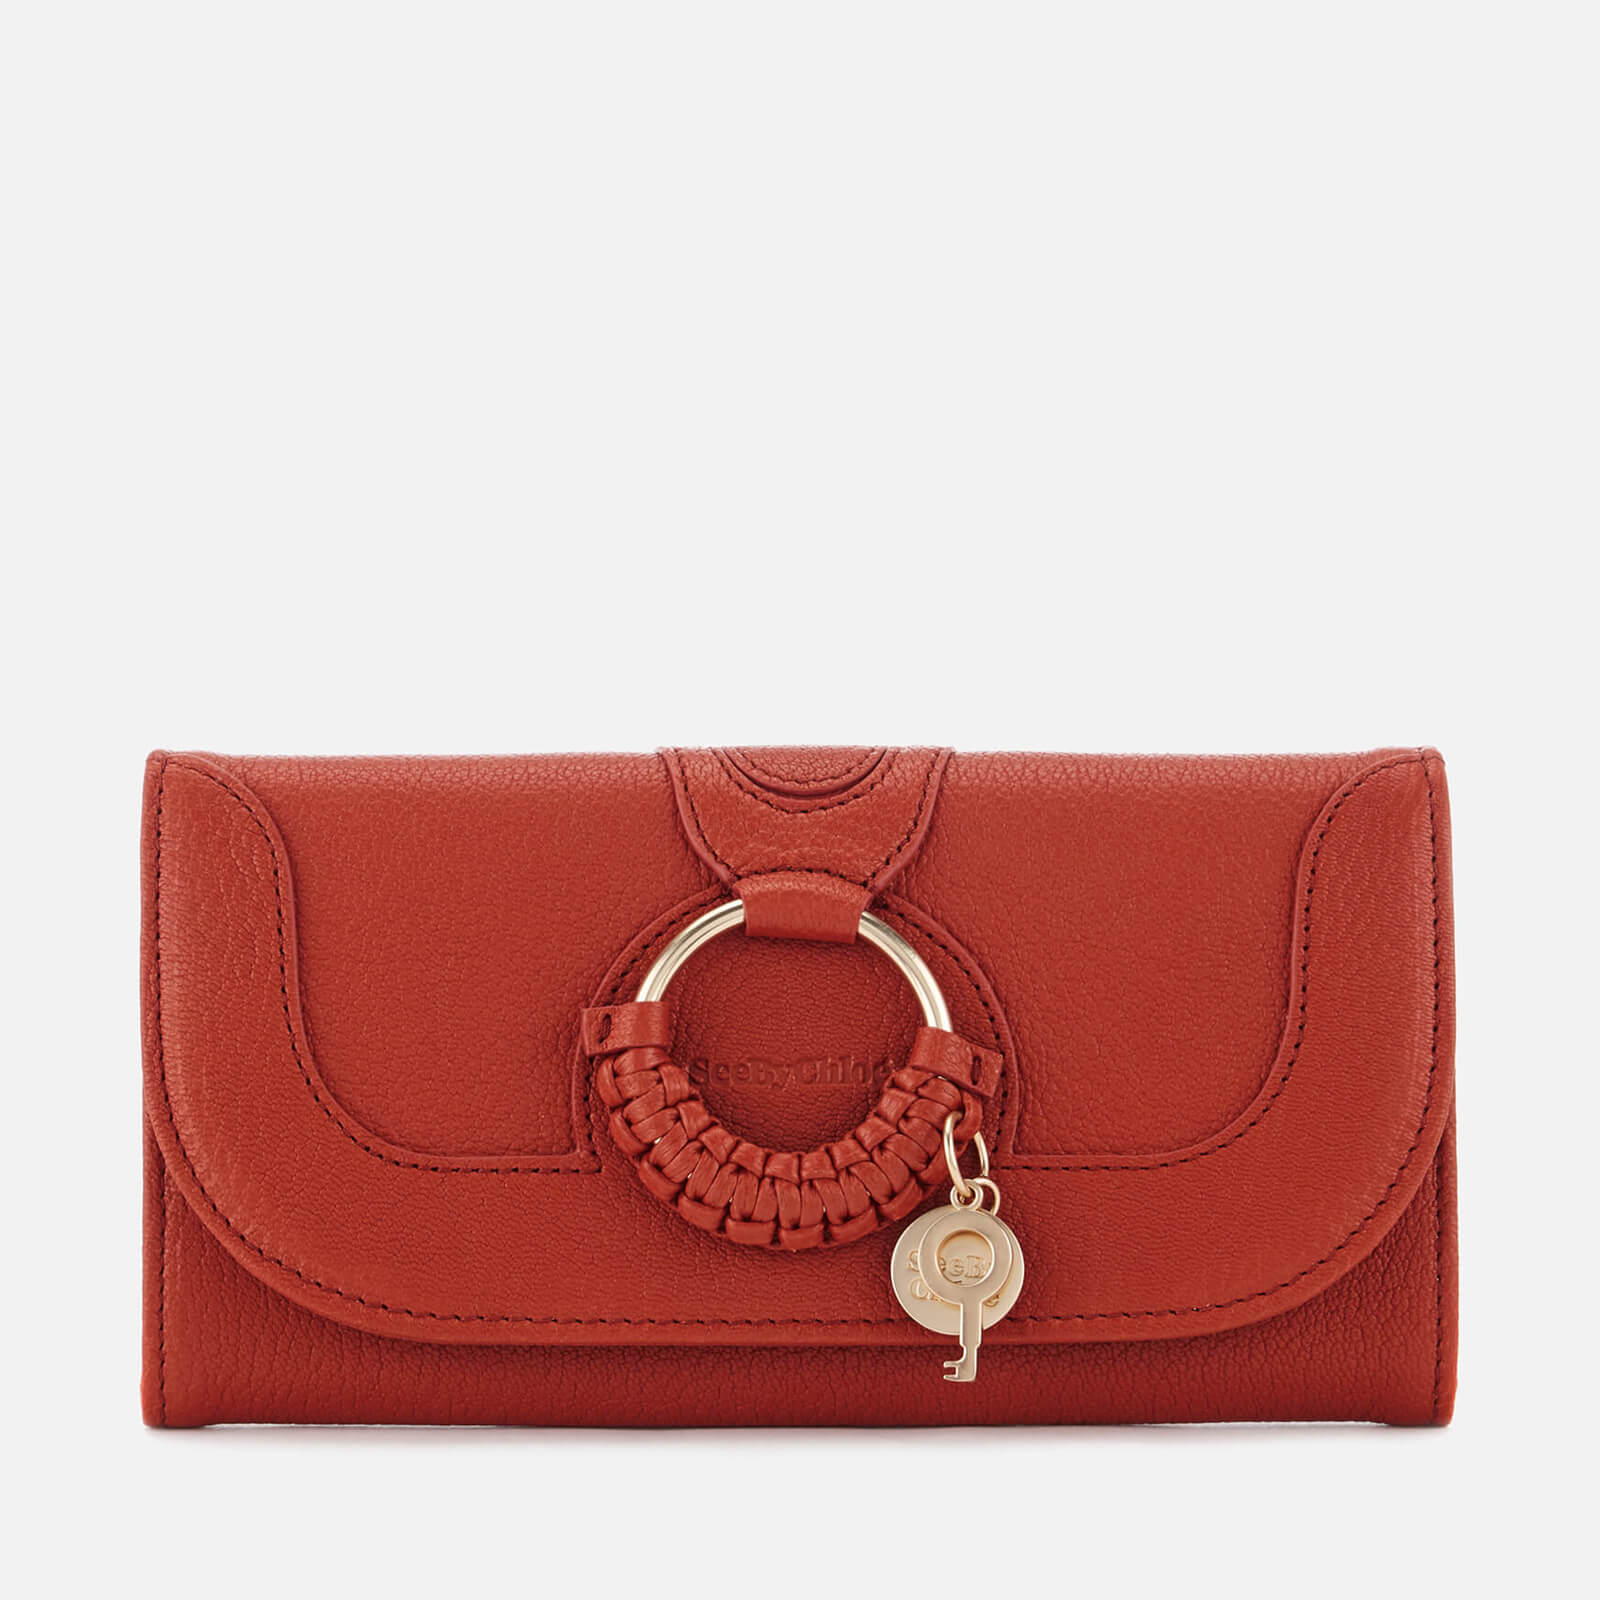 7c0a30acf6 See By Chloé Women's Hana Long Wallet - Red Sand